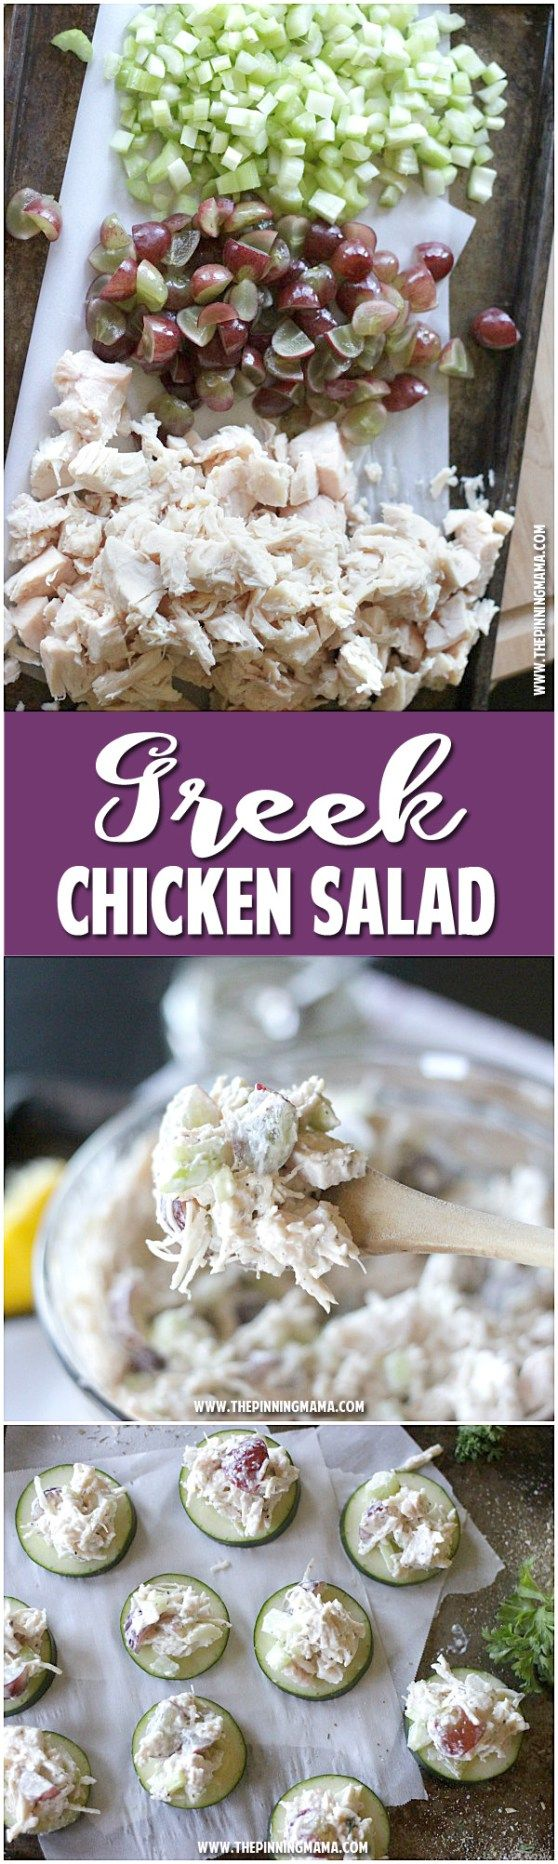 Greek Chicken Salad Recipe - This is AMAZING! Recipe includes directions to make it Whole30 compliant, paleo, gluten free, dairy free, and low carb! I didn't know healthy food tasted this good!